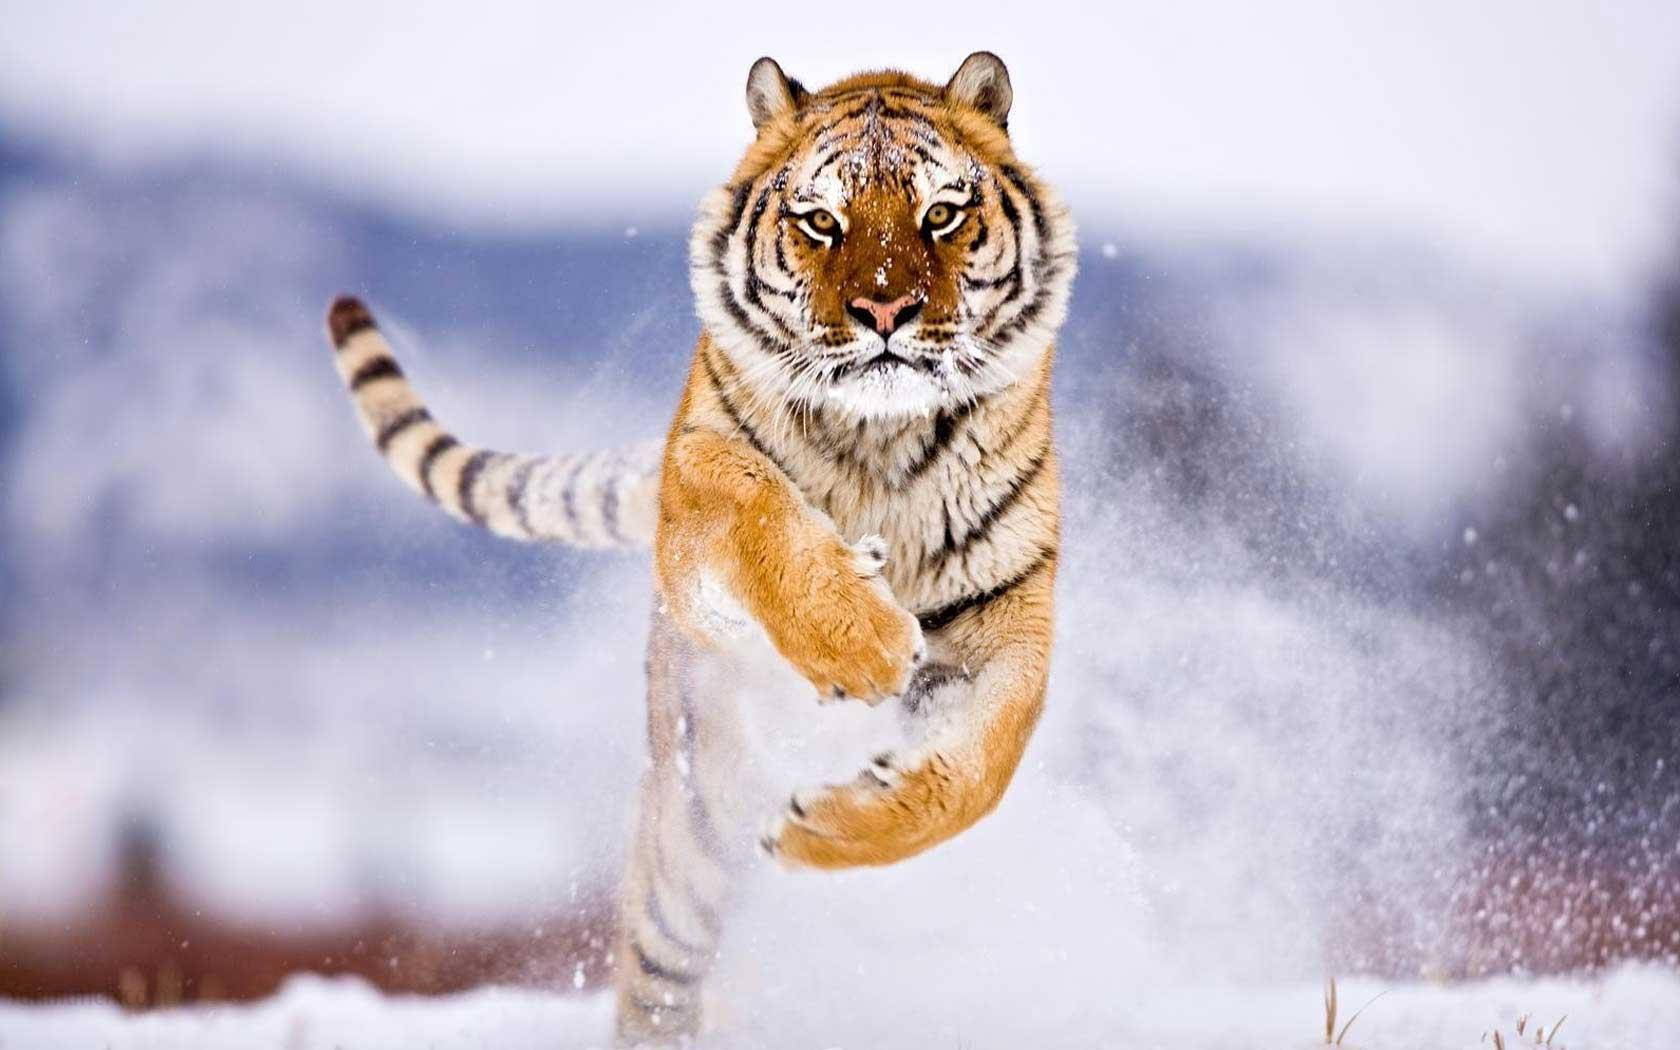 Wallpapers of wild animals